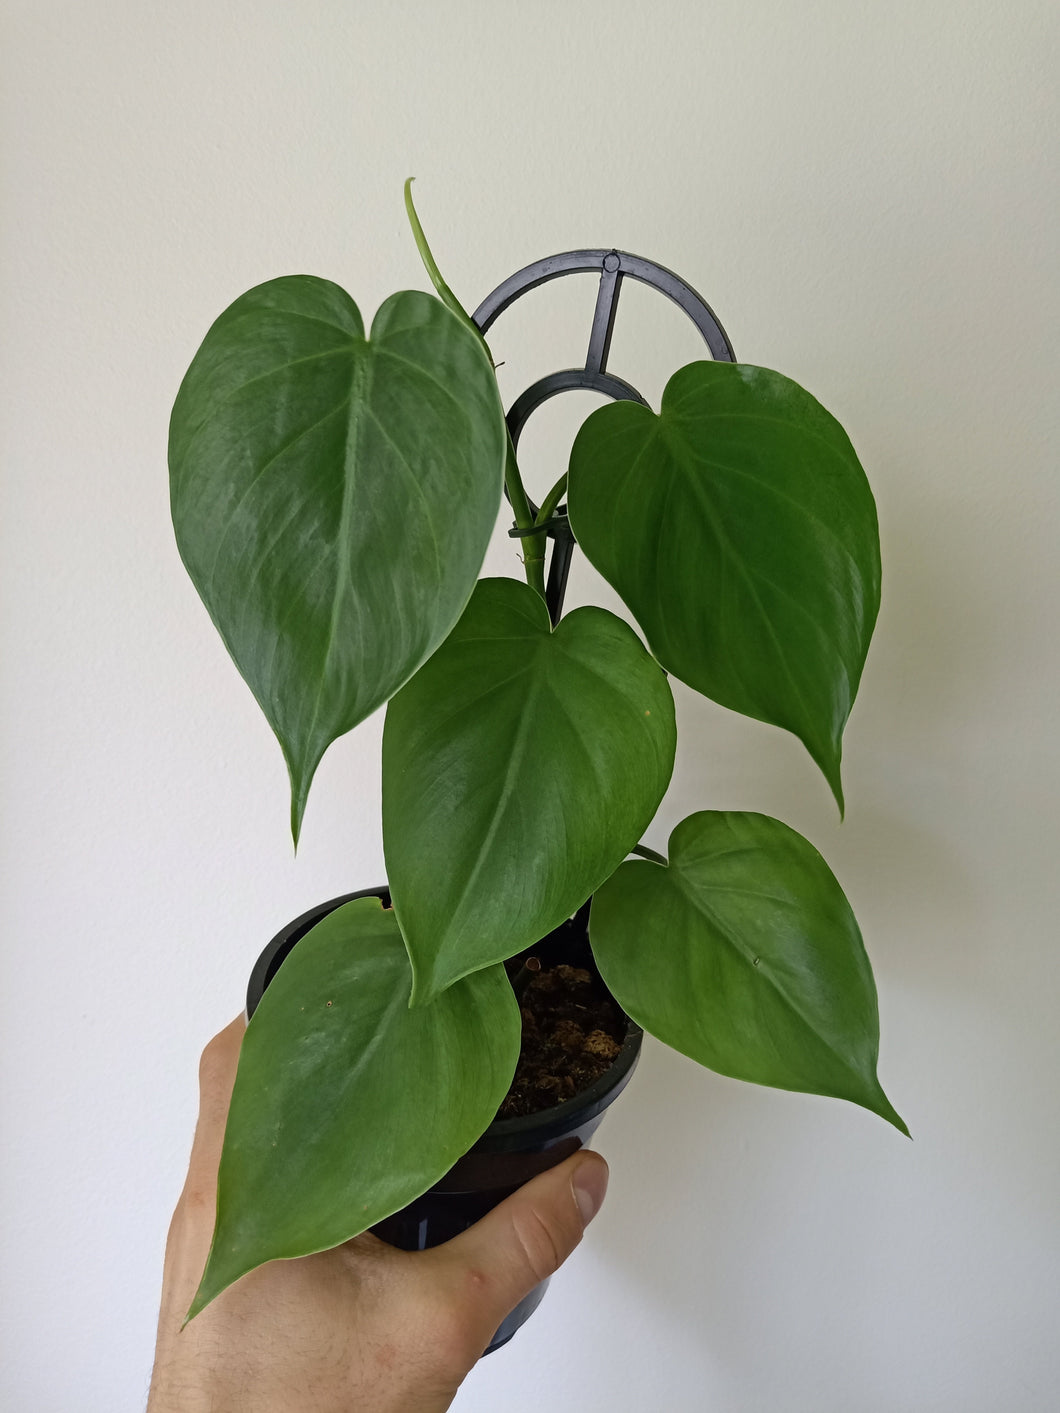 Philodendron hederaceum var. oxycardium - Heart Leaf Philodendron